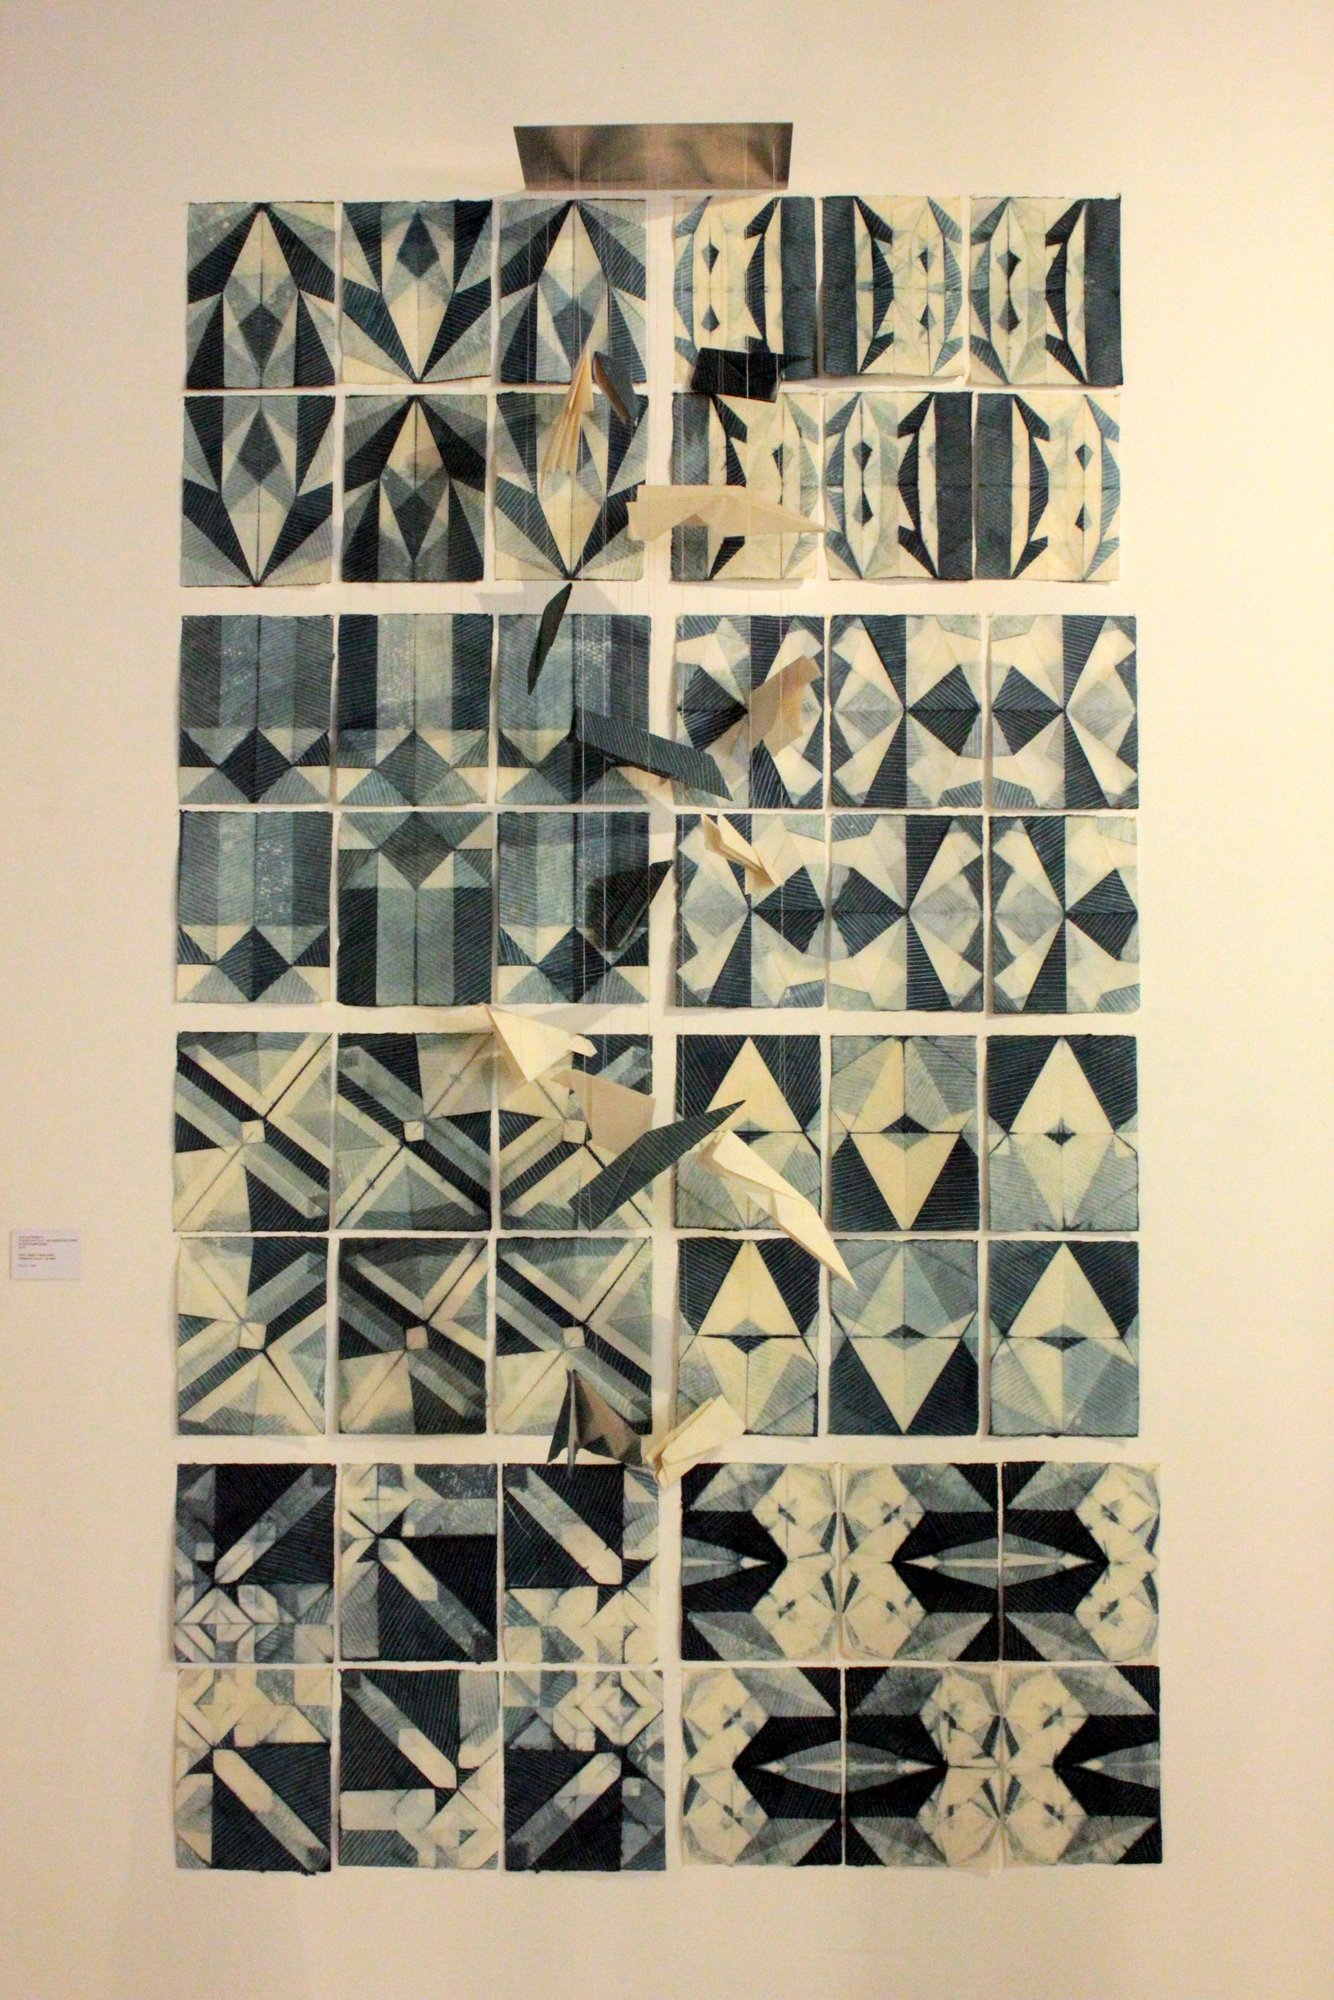 Paper airplane folds make for the most interesting shibori patterns! by Ana Lisa Hedstrom